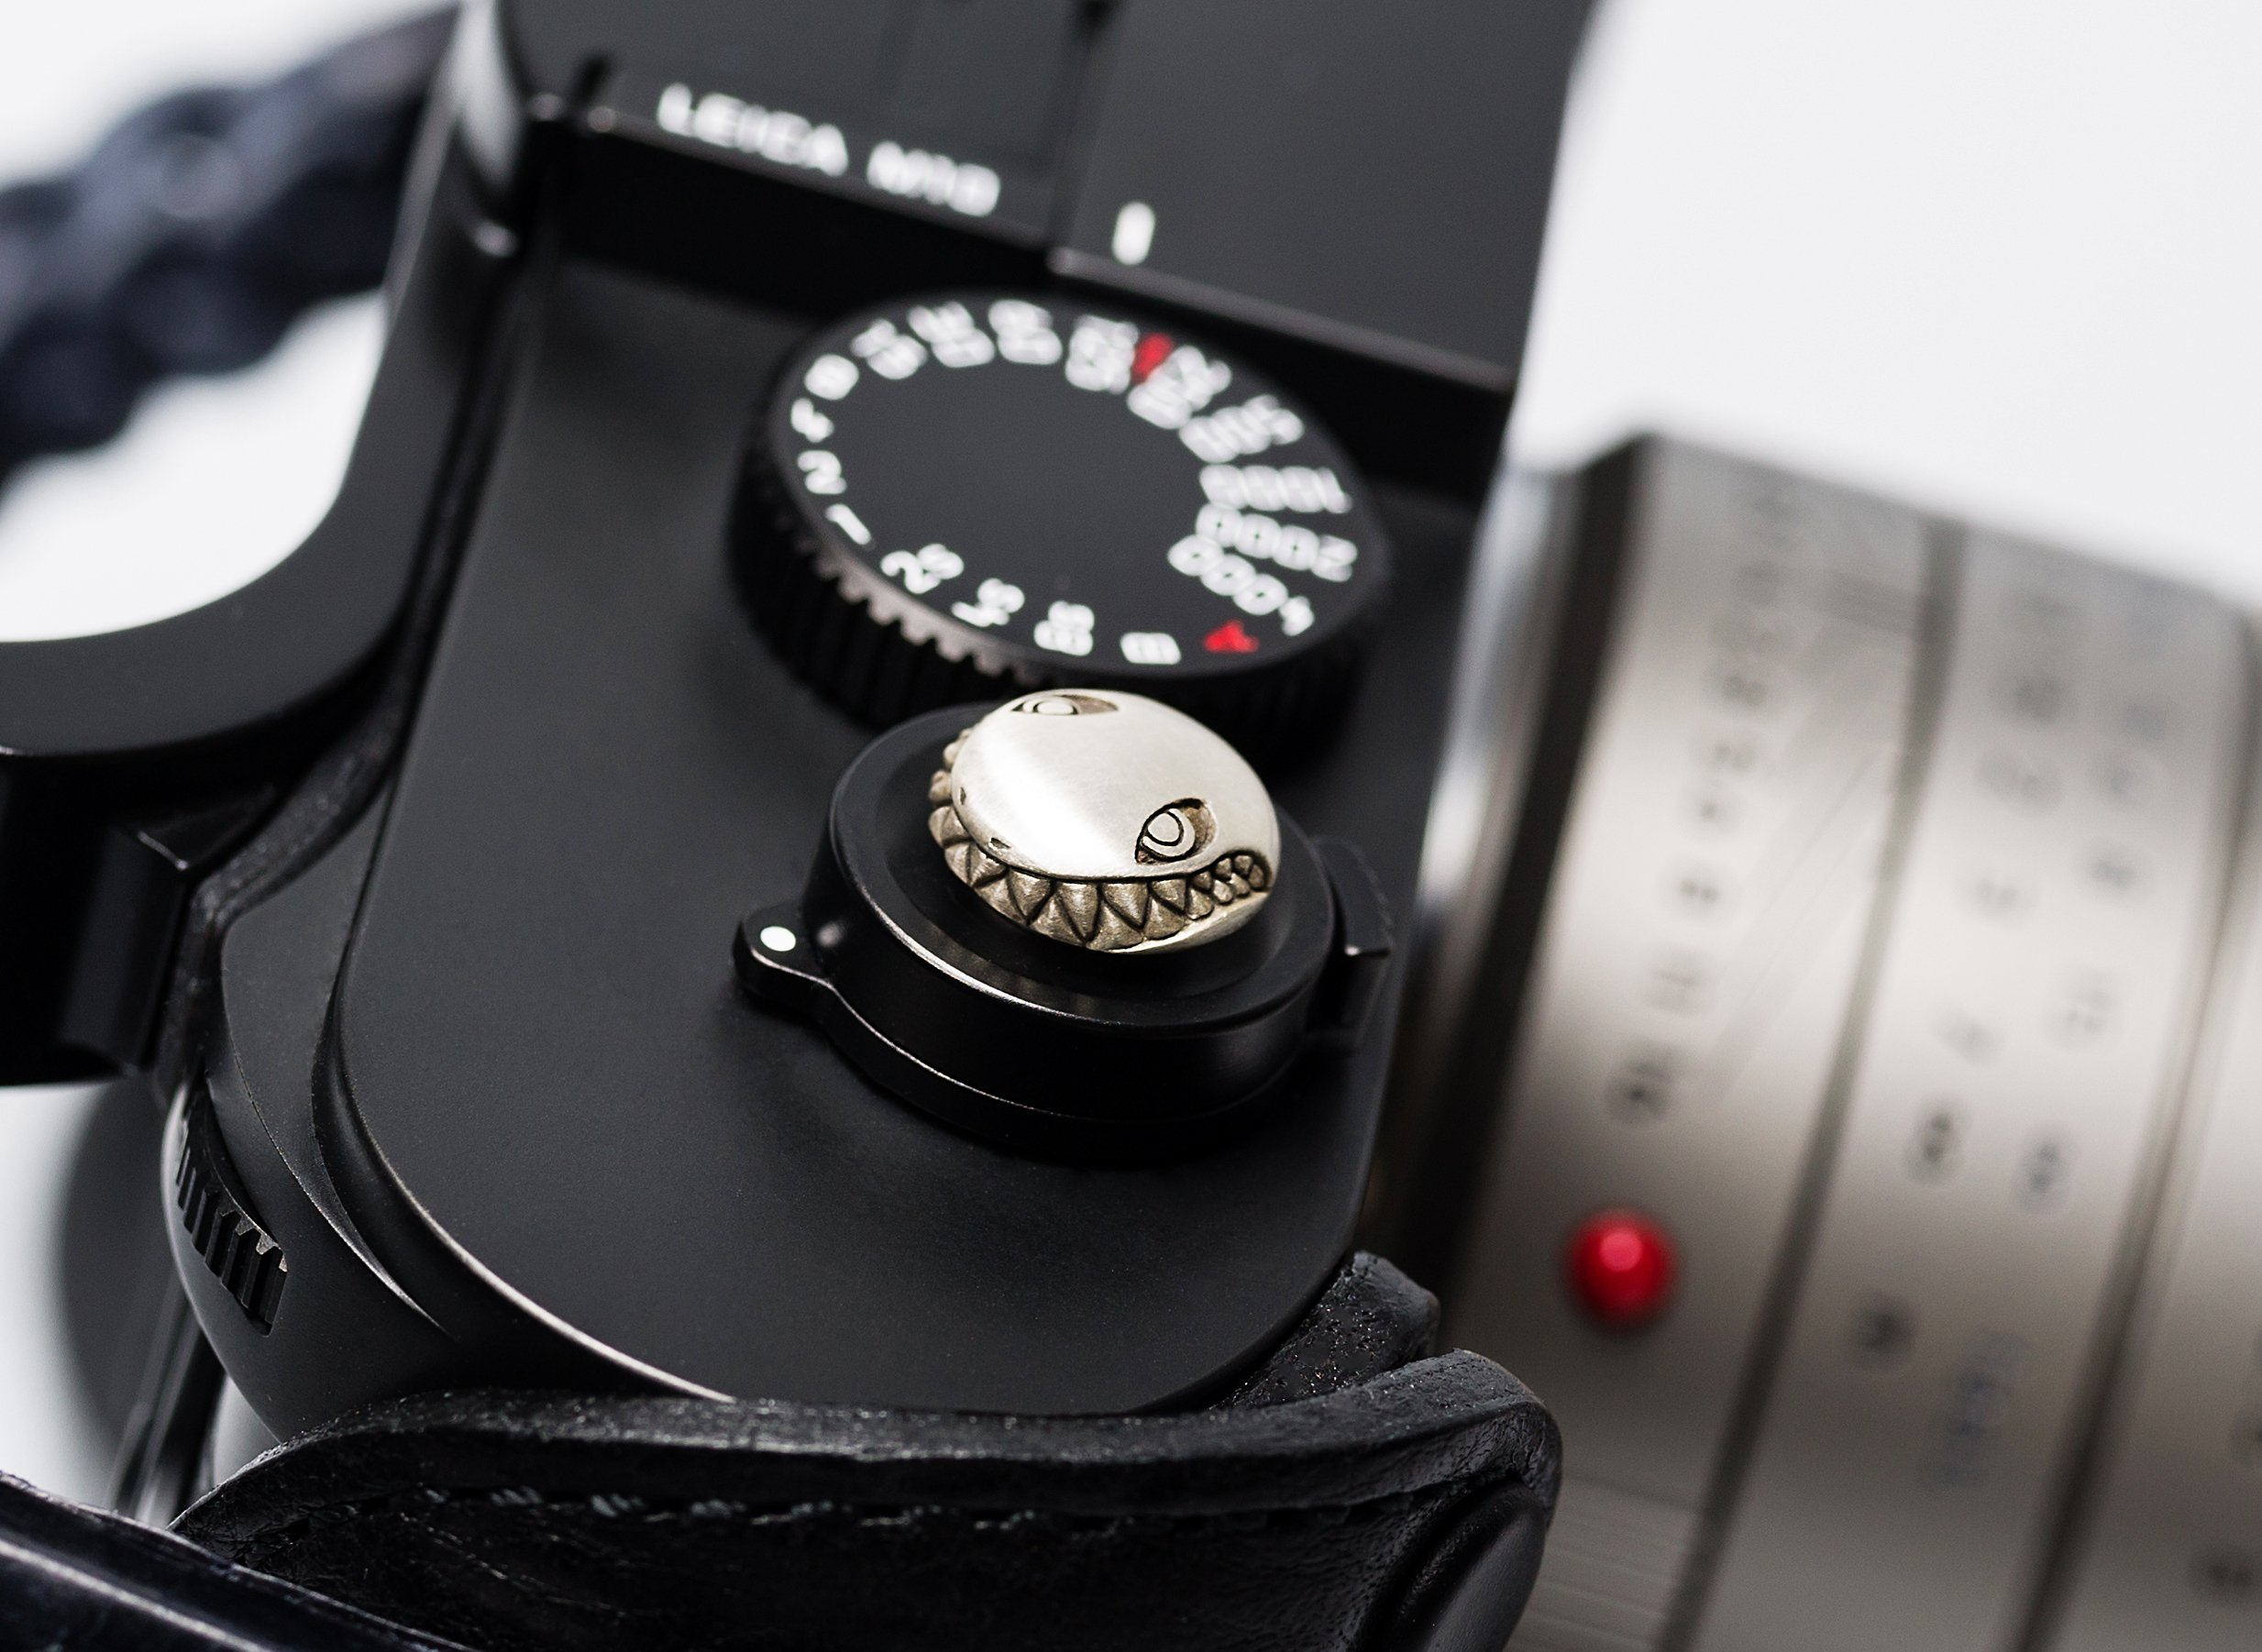 Soft Shutter Release Button Tiger Shark Sterling Silver Handcrafted by Jay Tsujimara fits Leica M240 variants and M10 by Jay Tsujimura